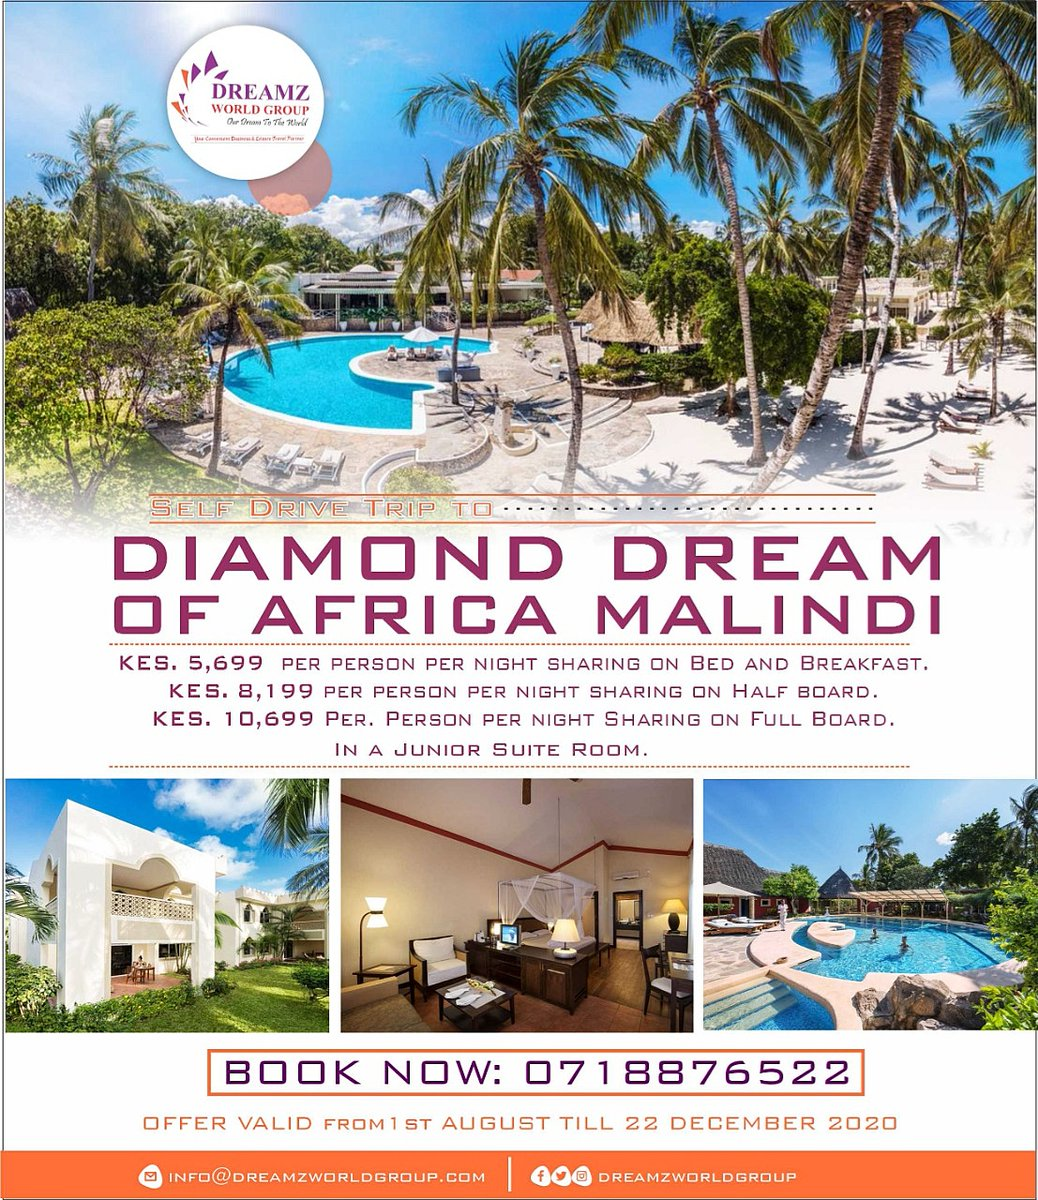 Just like the Gem, Diamond Dream of Africa Malindi has the brilliance to die for details.  Self Drive Rates. Check poster for details.  Valid from 1 Aug to 22 Dec 2020. #DreamzWorld #Malindi #TembeaKenya #DiamondDreamOfAfrica #Travel #Tour #Kenya #Scenery #BeachLife #Coastpic.twitter.com/MwSxDNXCcG